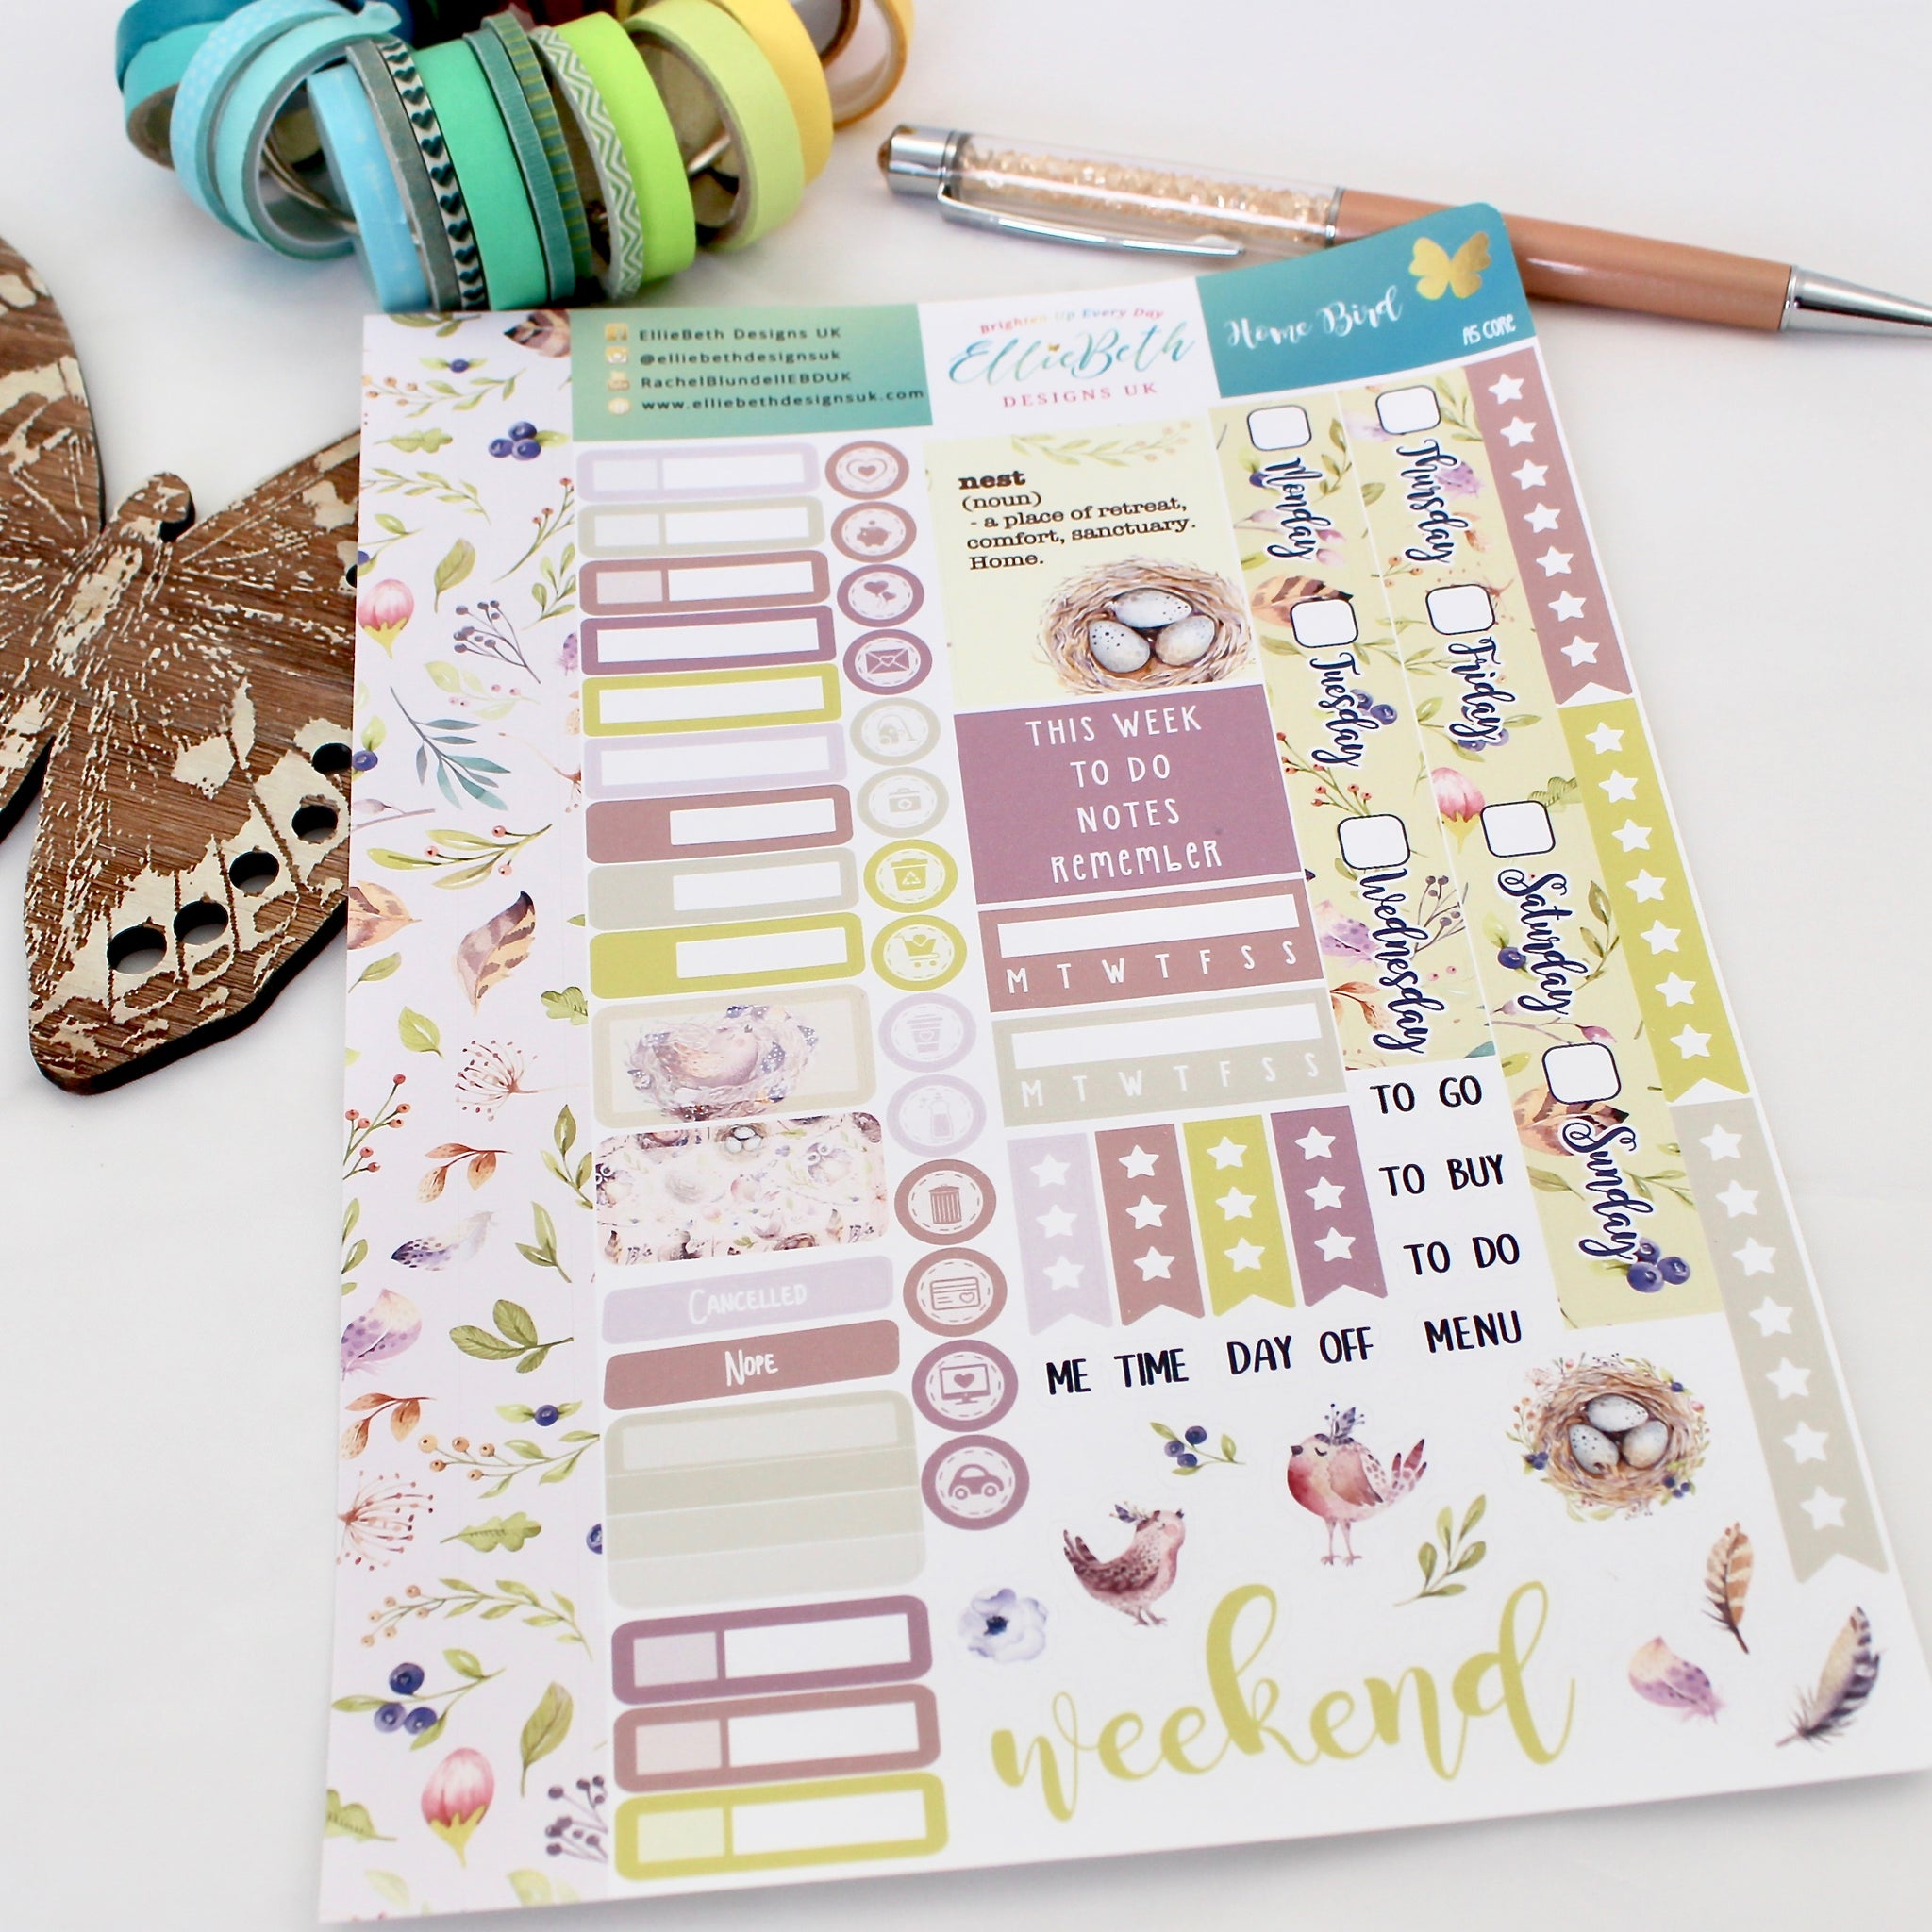 'Home Bird' - A5 Core Sheet - A5 binder ready planner stickers - EllieBeth Designs UK